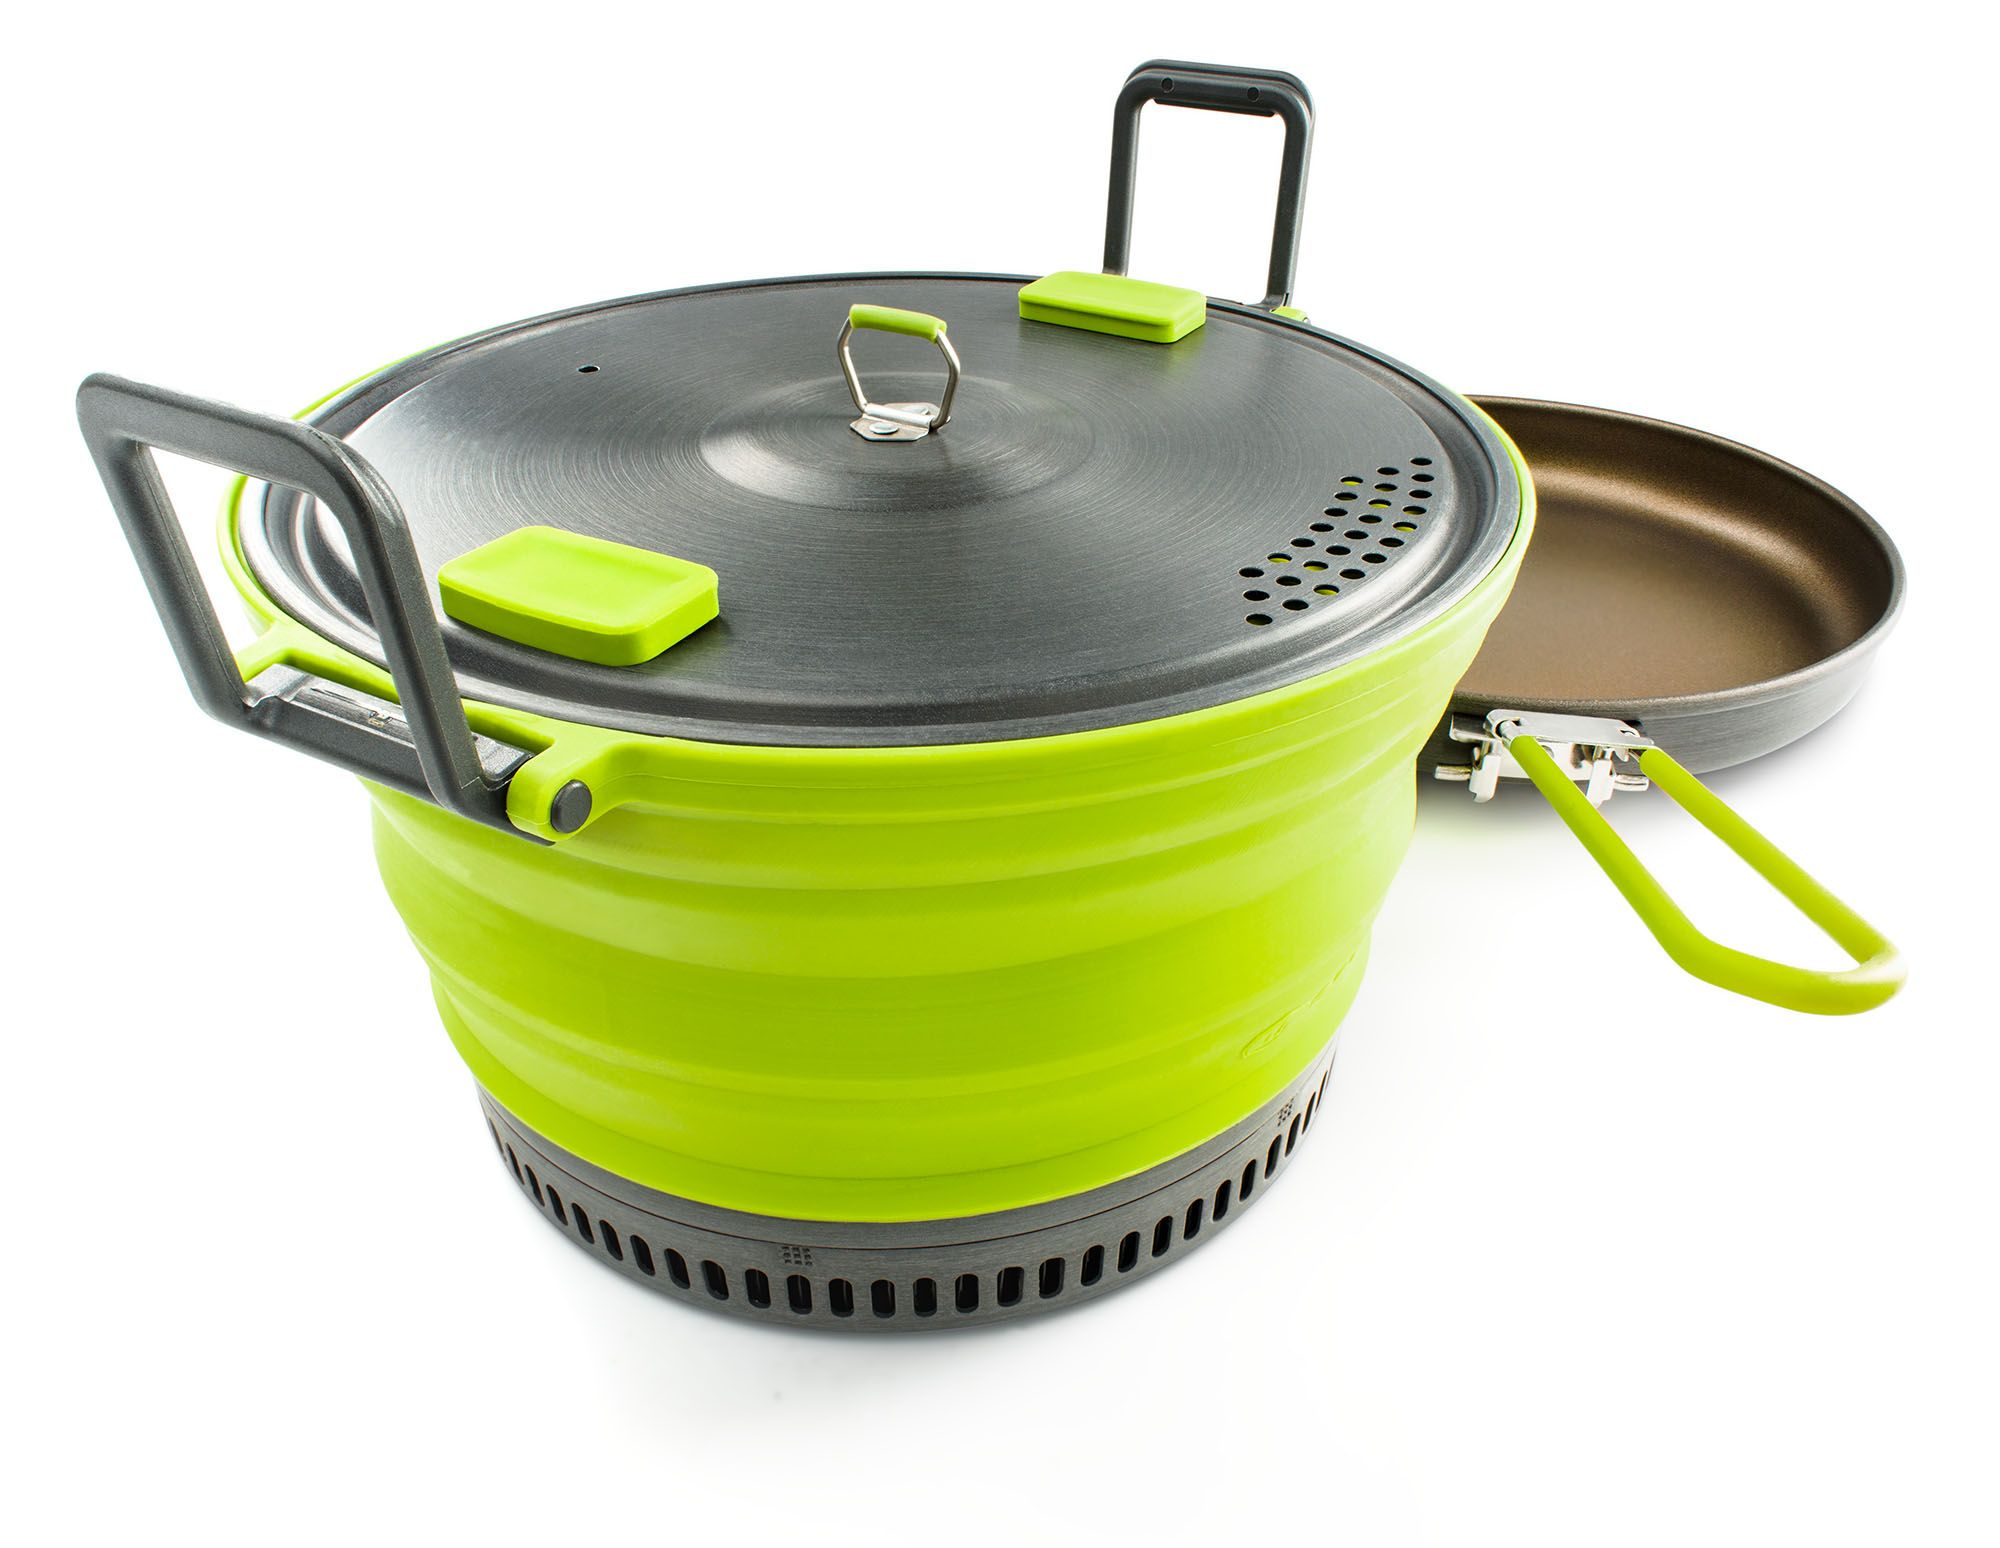 GSI's Escape series of pots and bowls collapse down for easy transport.